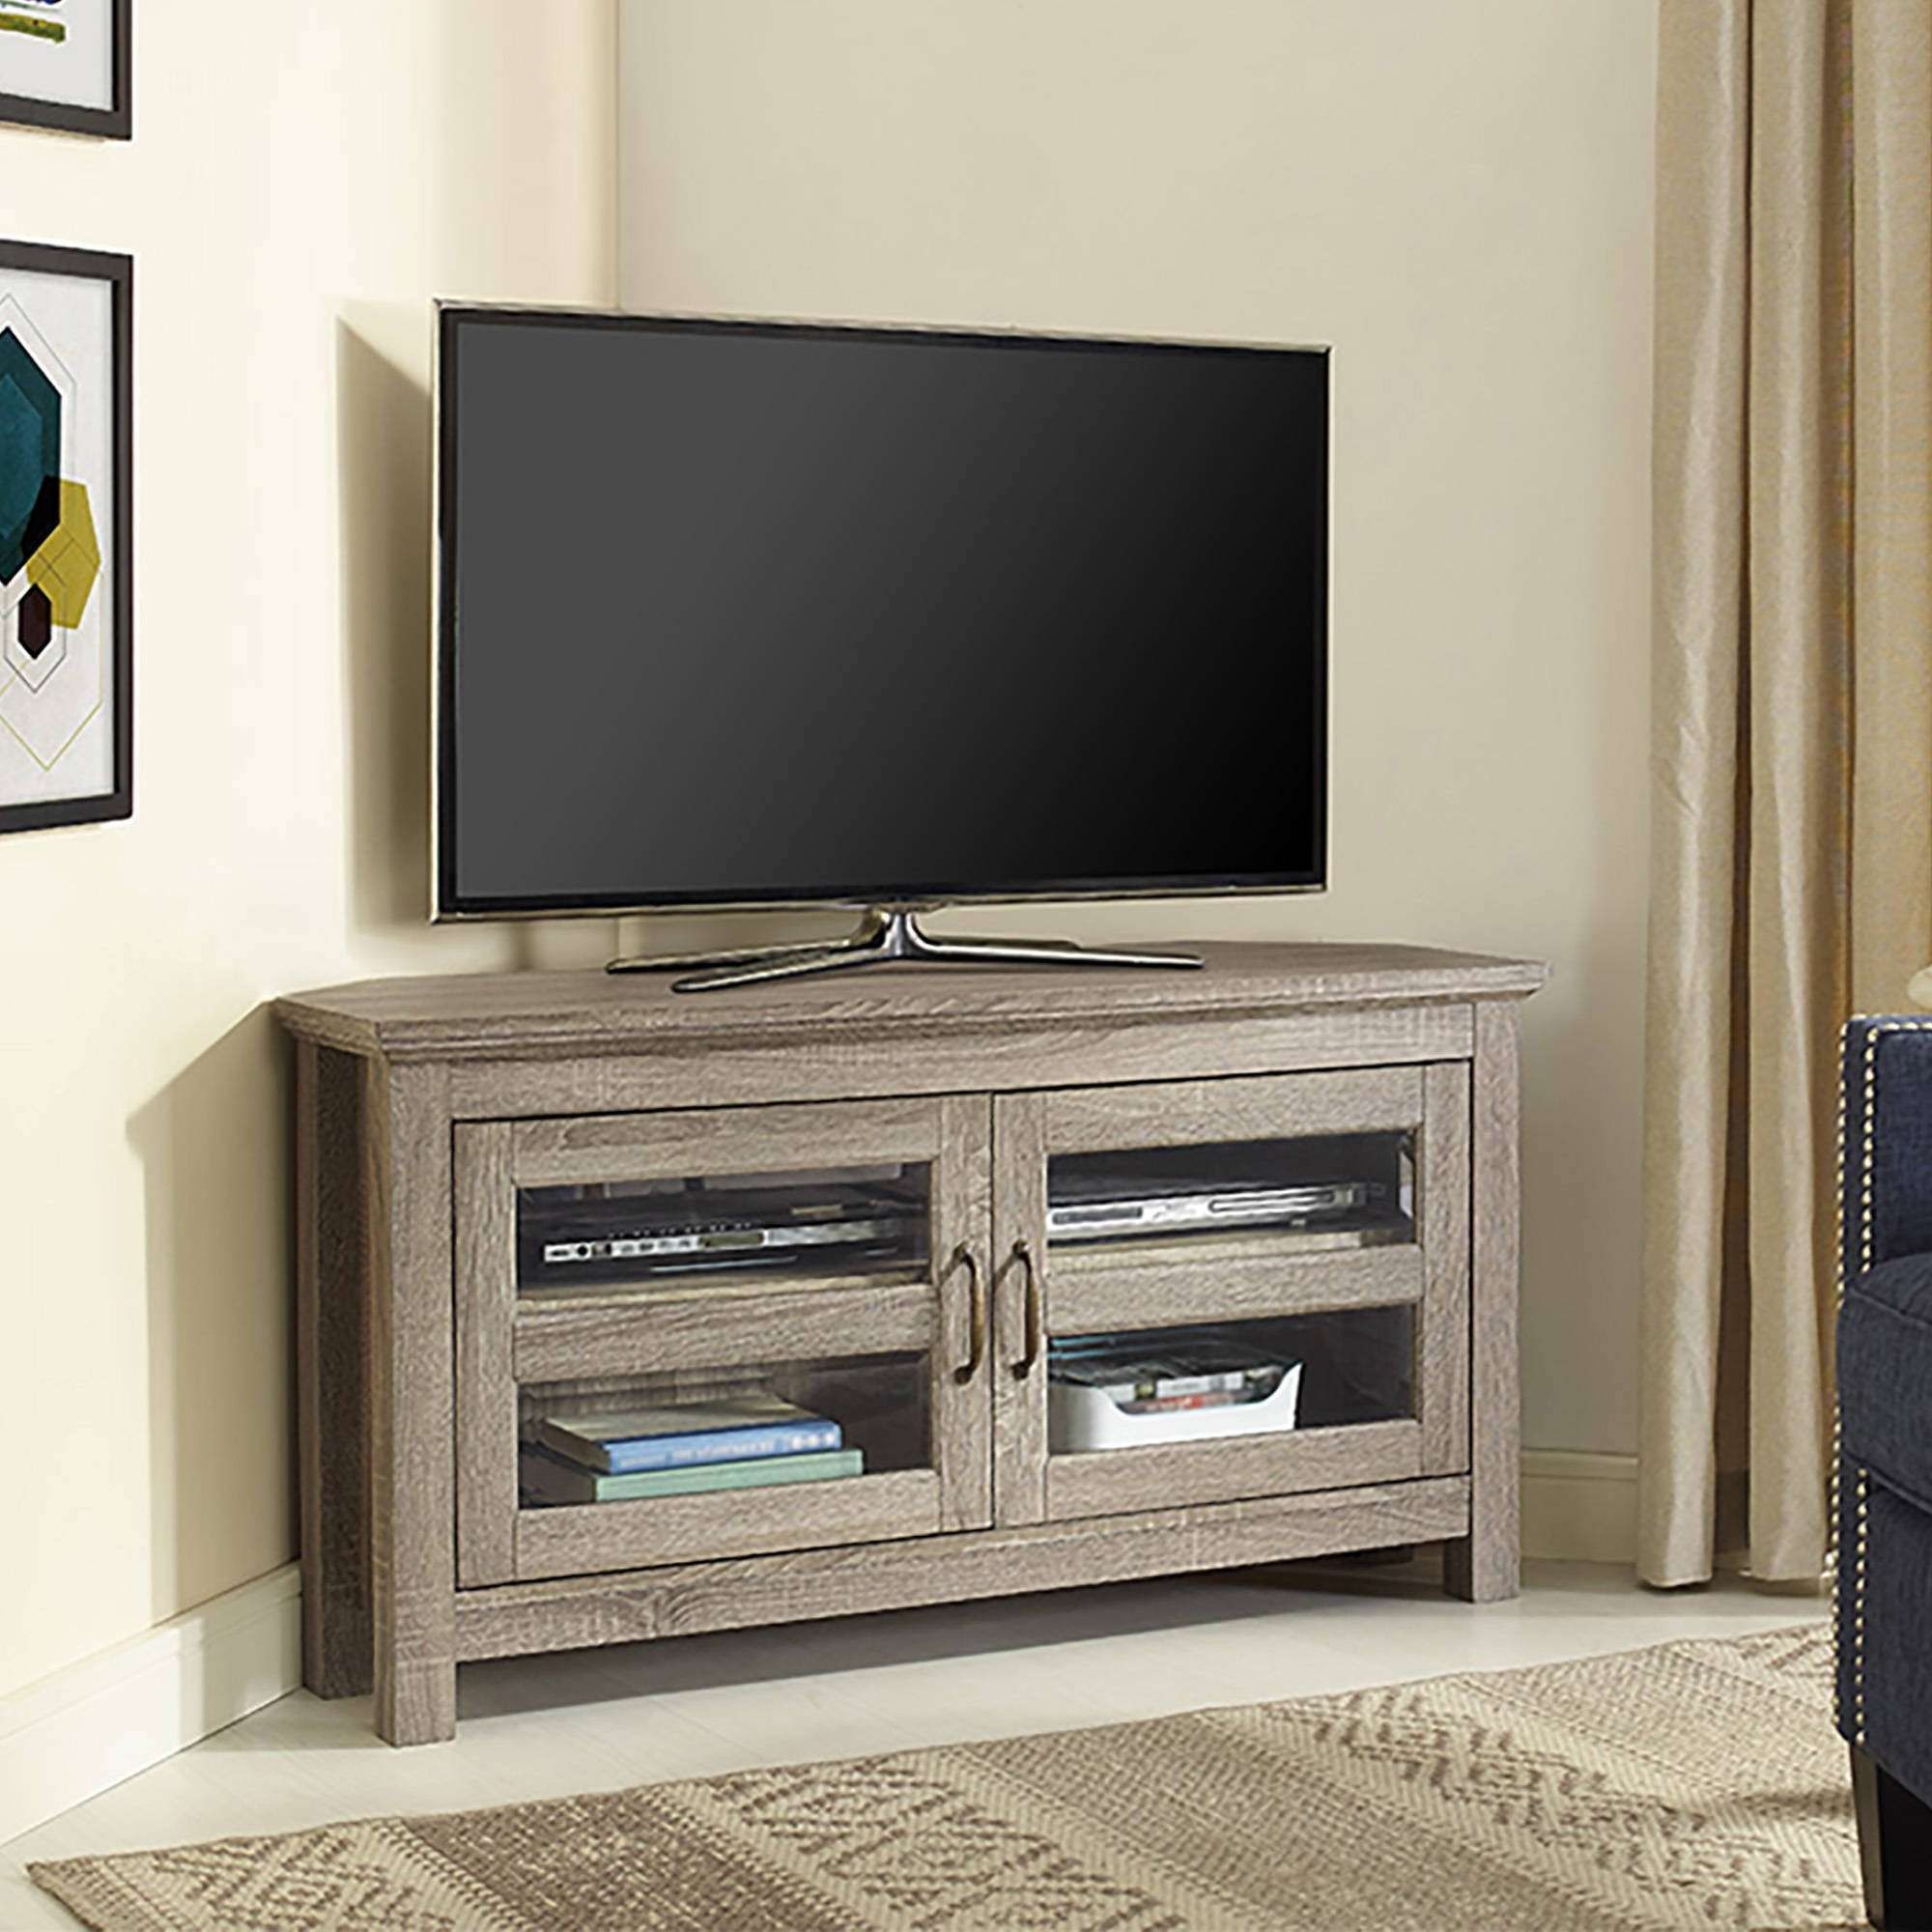 Tv : Gratifying Corner Tv Stands 40 Inch Flat Screen Top 40 Inch Regarding Corner Tv Stands 40 Inch (View 10 of 20)